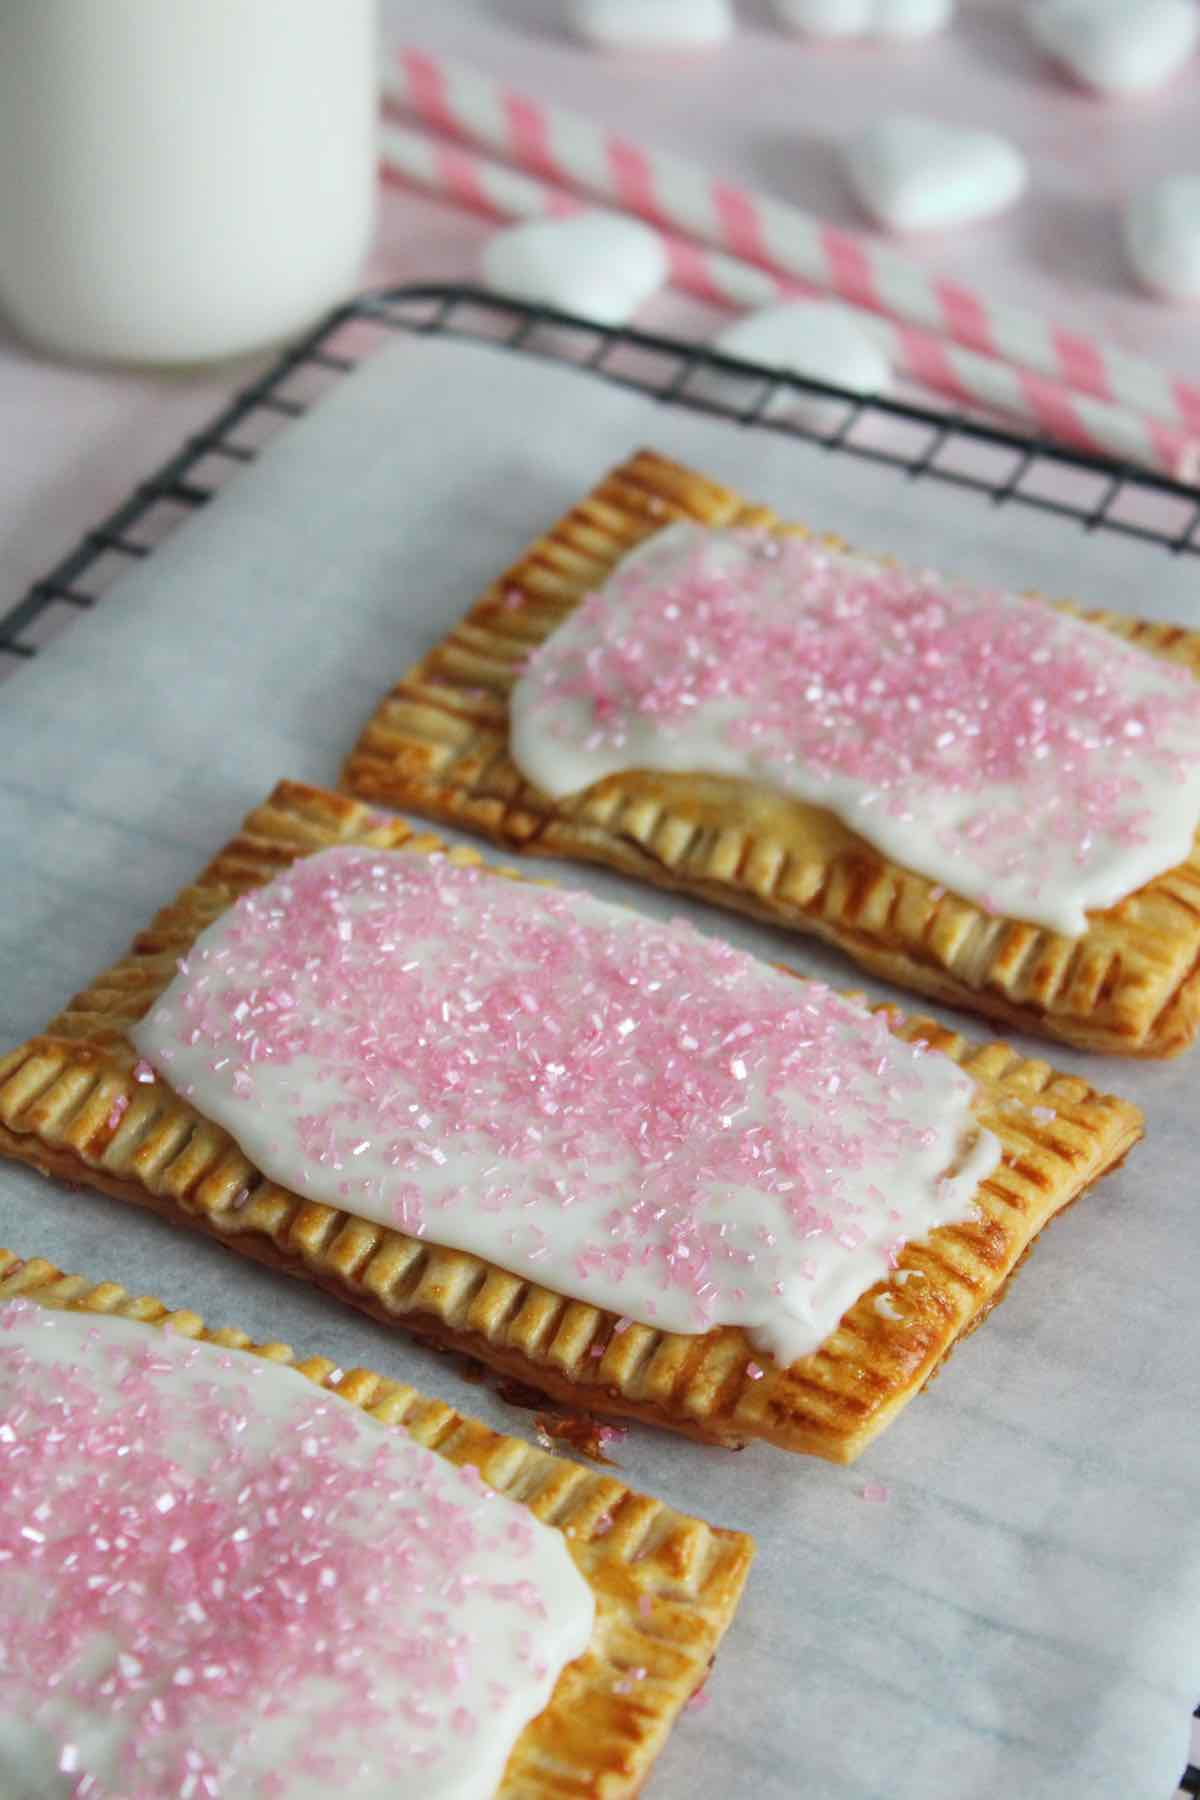 Homemade strawberry pop tarts recipe made with store bought pie crust.